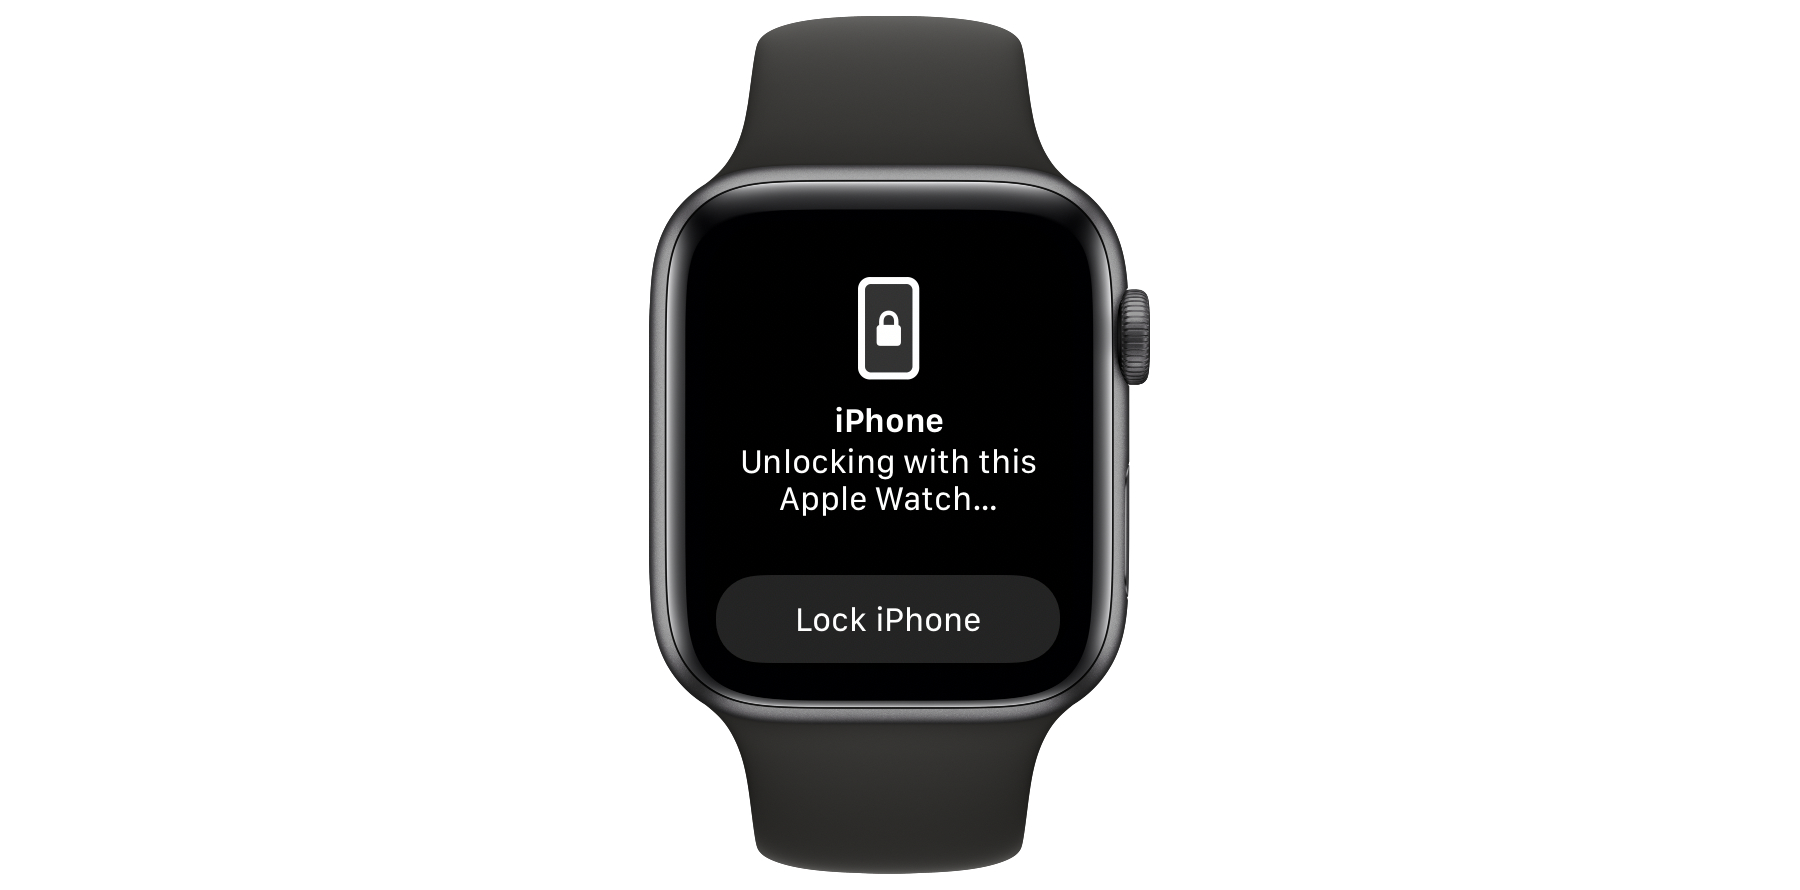 Apple's WatchOS 7.4 arrives with iPhone unlocking feature